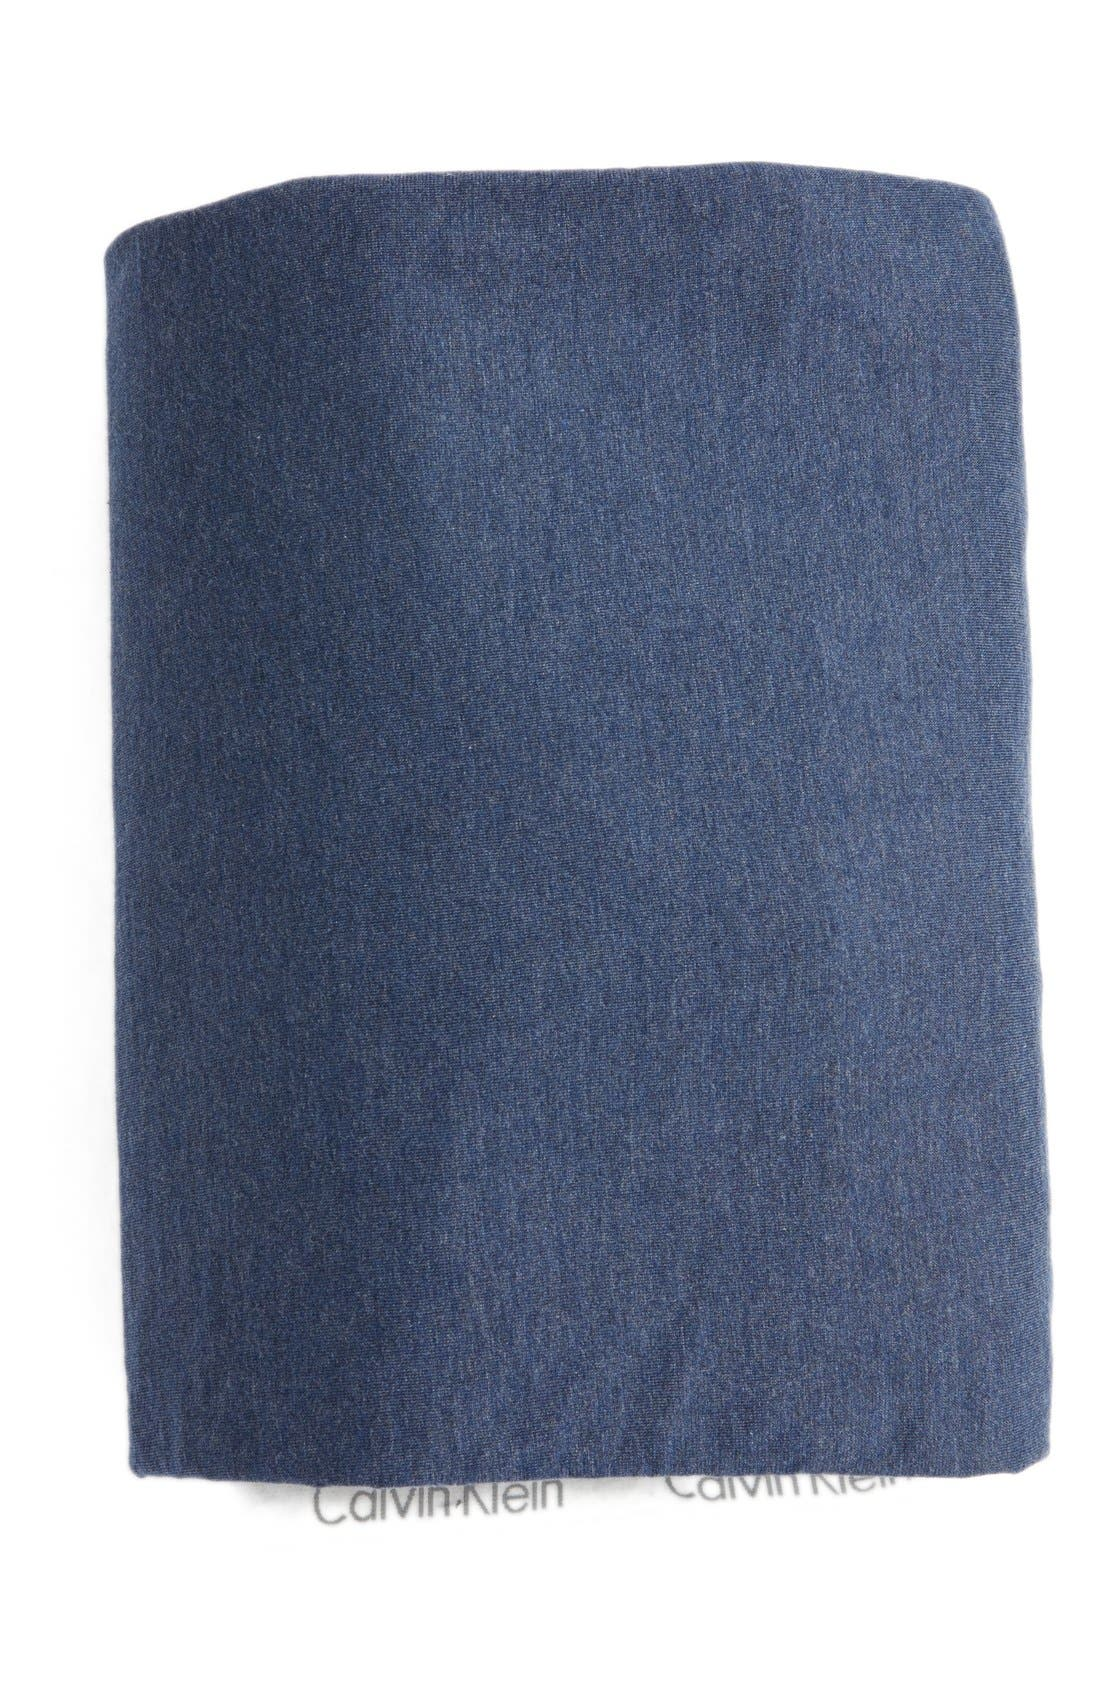 Alternate Image 1 Selected - Calvin Klein Home Modern Cotton Collection Cotton & Modal Fitted Sheet